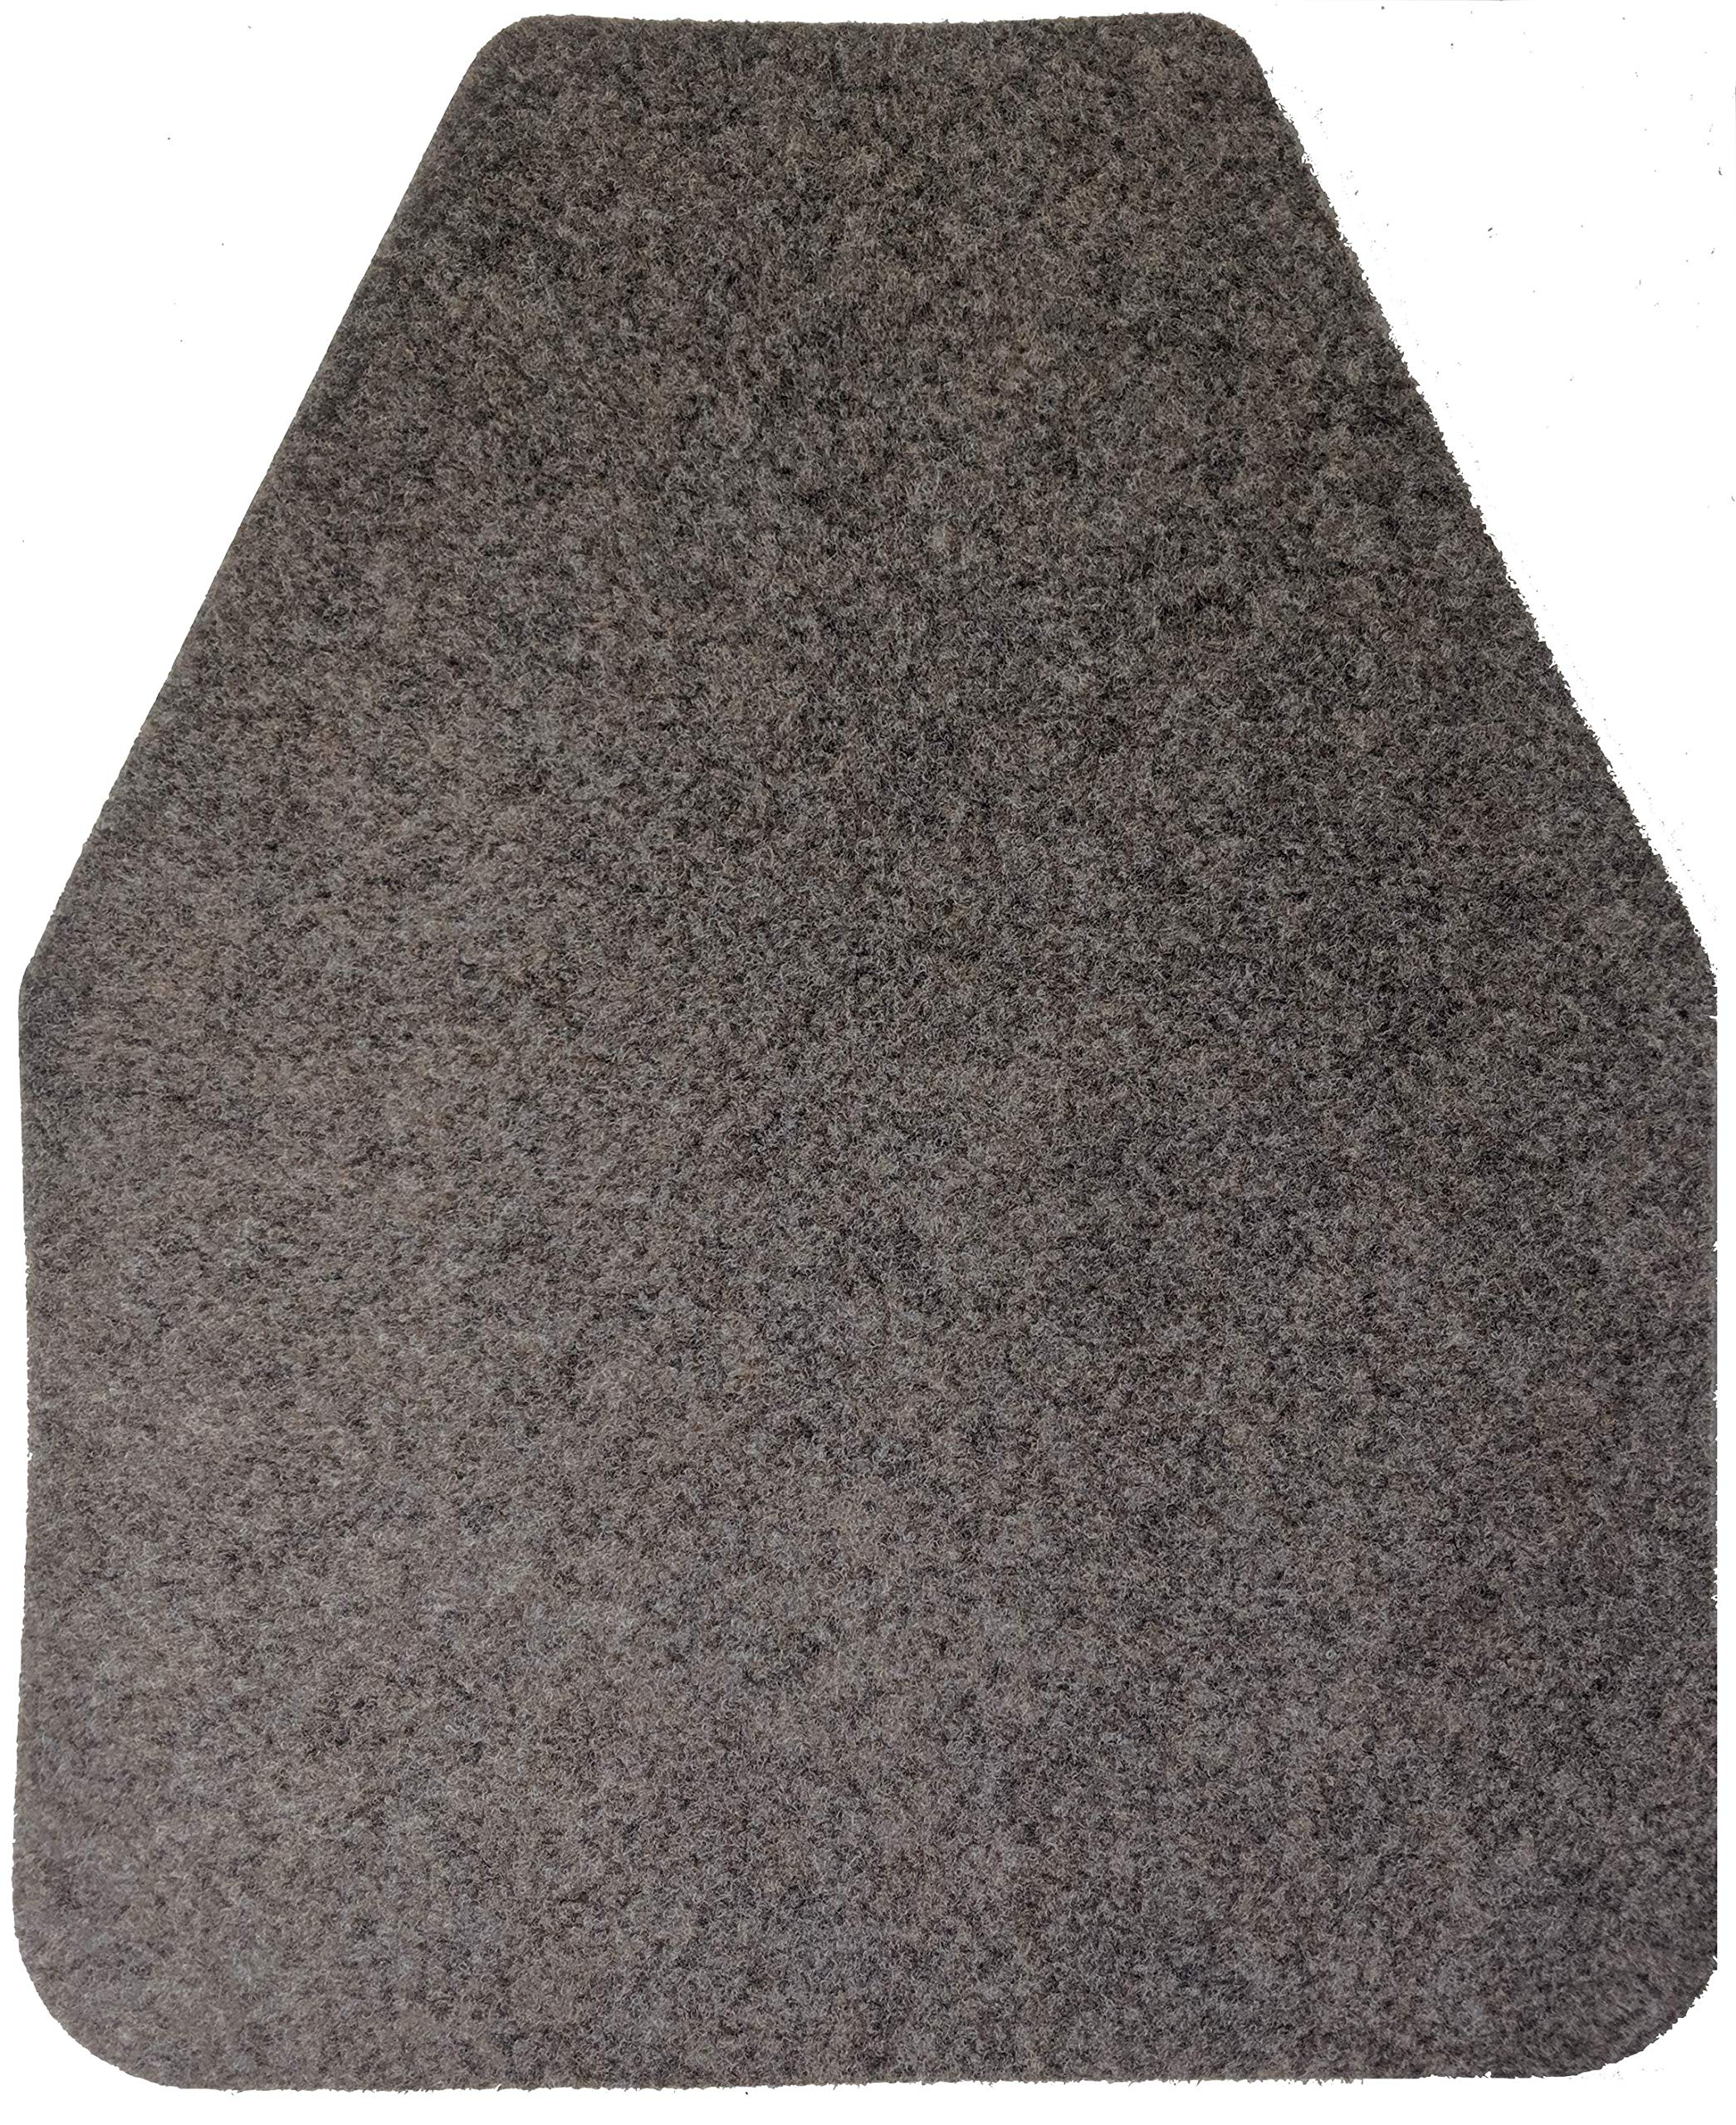 Direct Floor Mats Odor and Bacteria Eliminating Disposable Urinal Mats - Tan (Case of 12) by Direct Floor Mats